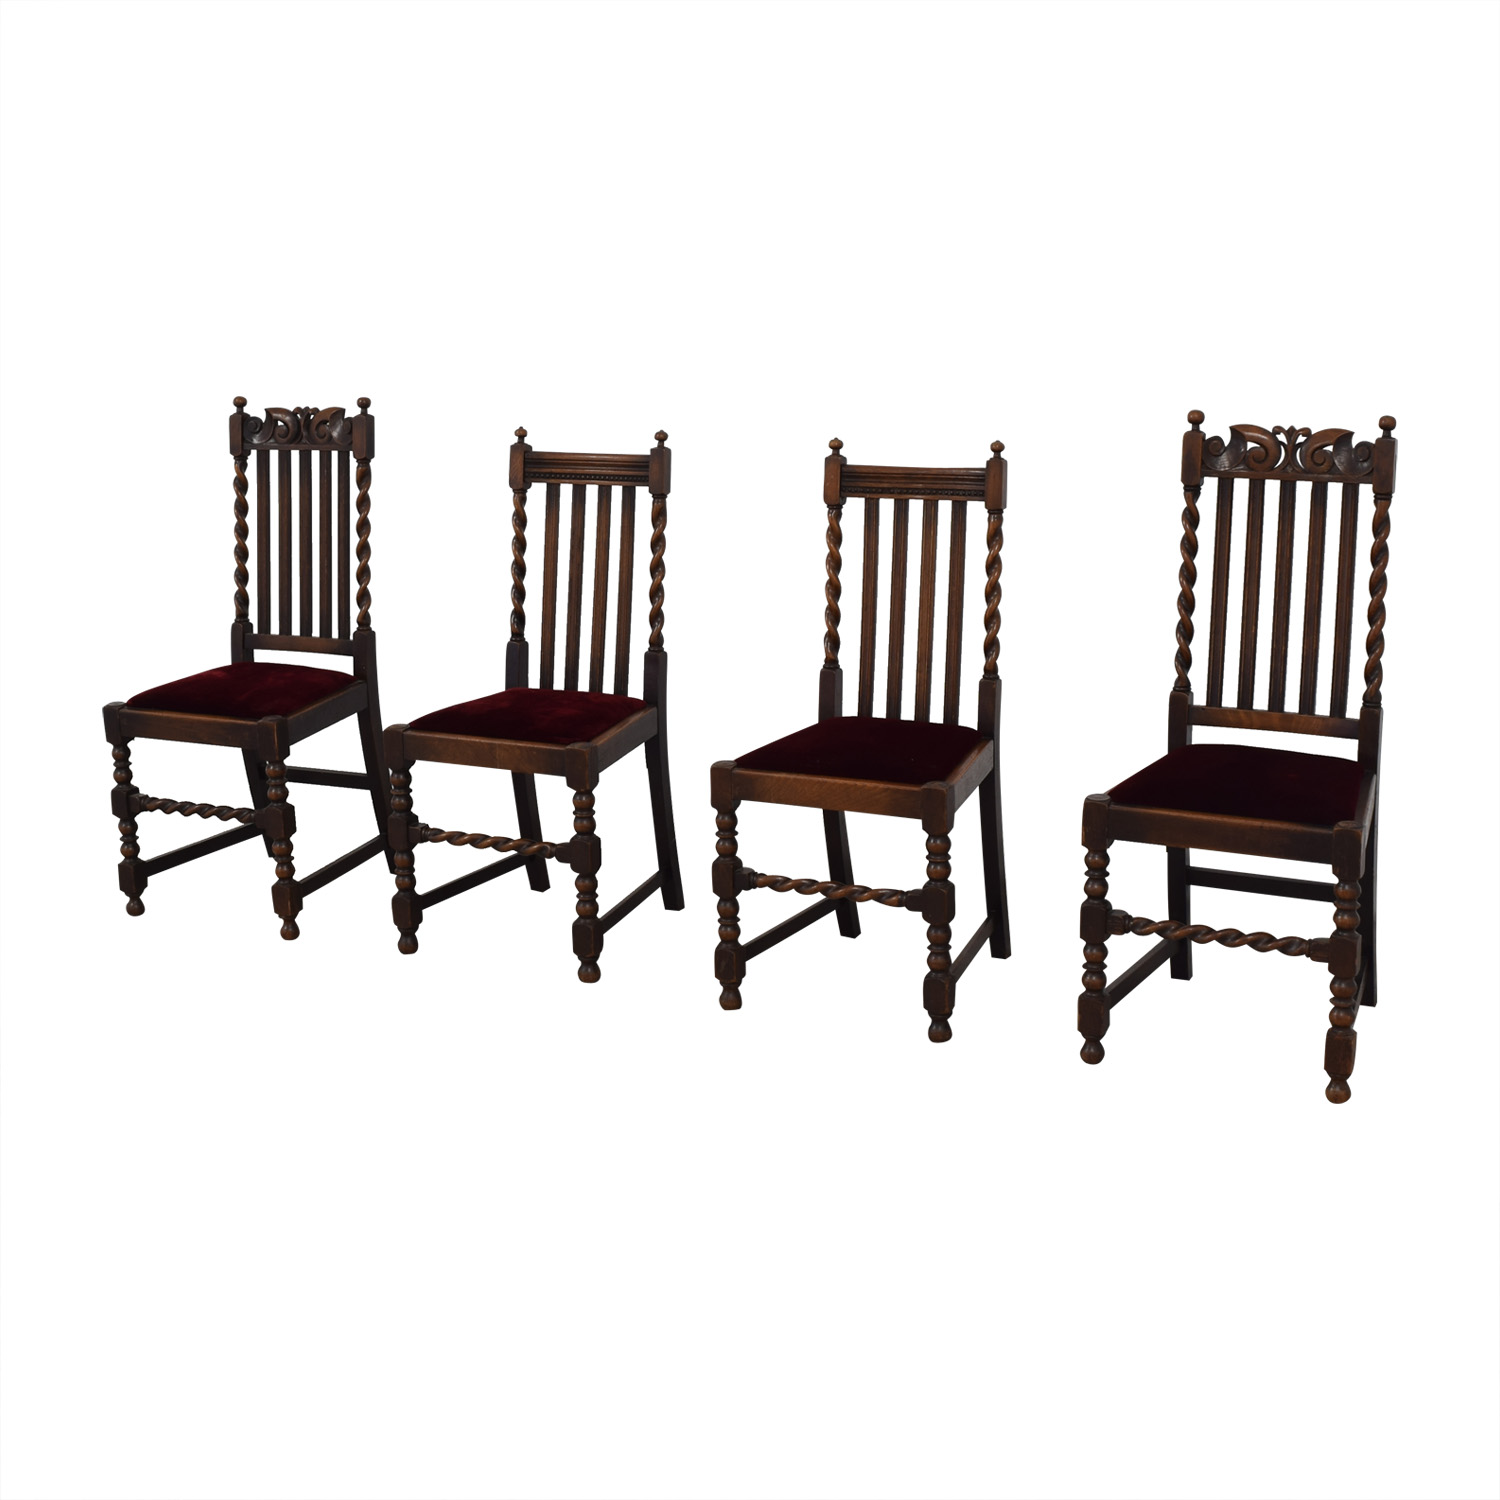 Jacobian Barley Twist Chairs dimensions